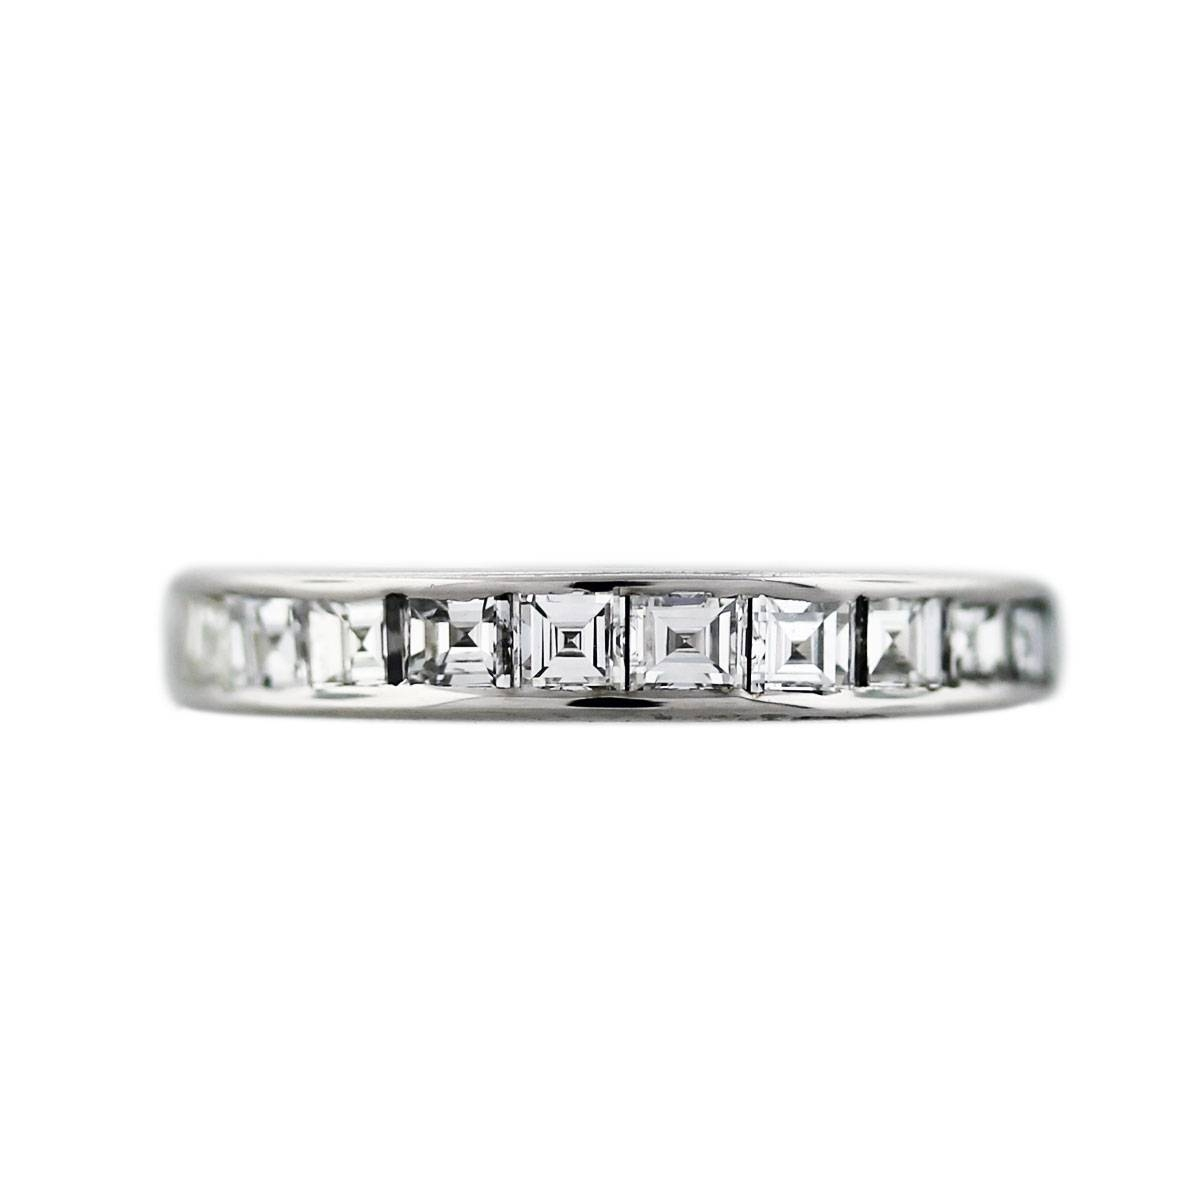 14K White Gold Square Step Cut Diamond Wedding Band Ring Within 2018 Diamonds Wedding Bands (View 2 of 15)